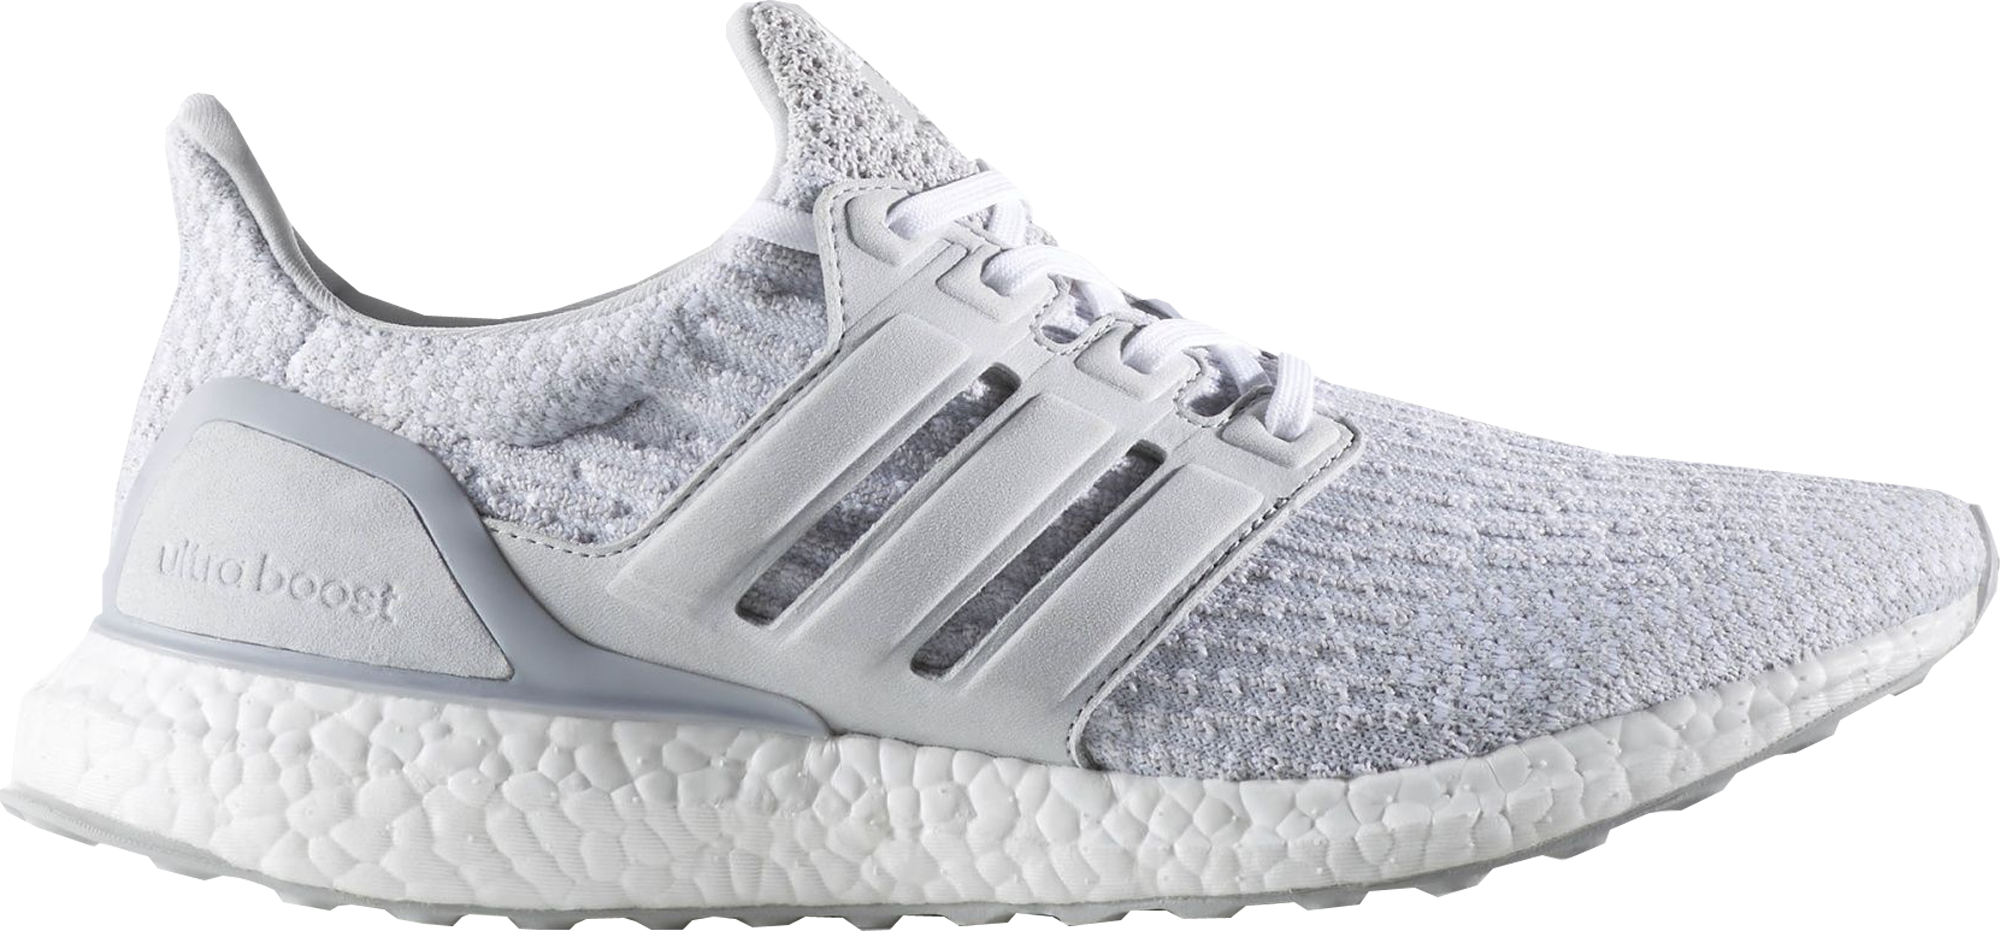 2caed906959 Reigning Champ x adidas Ultra Boost Grey - StockX News